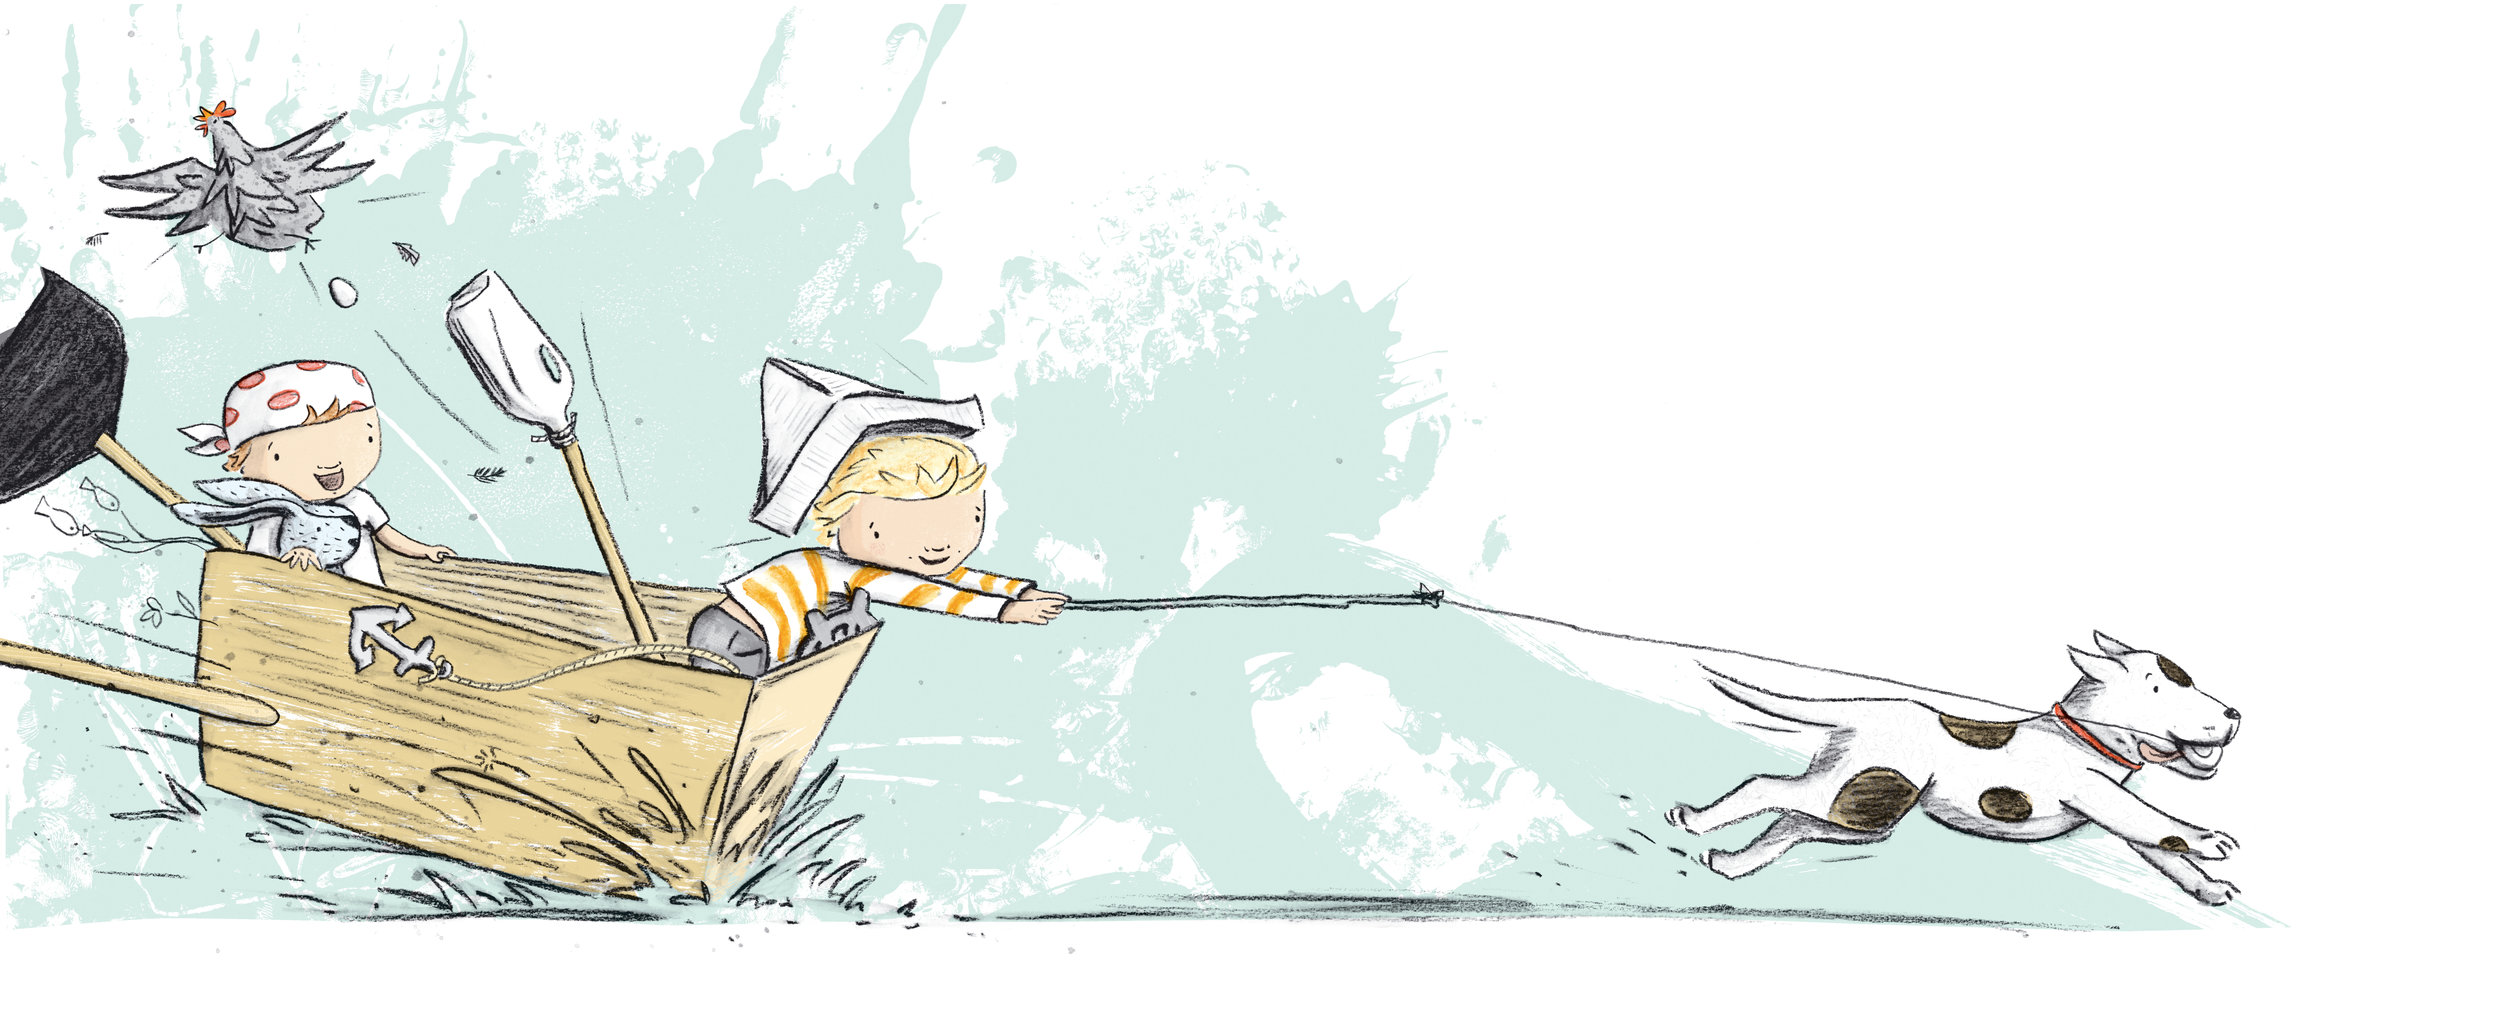 7, 8, he took the bait! - Illustration by Kylie Howarth